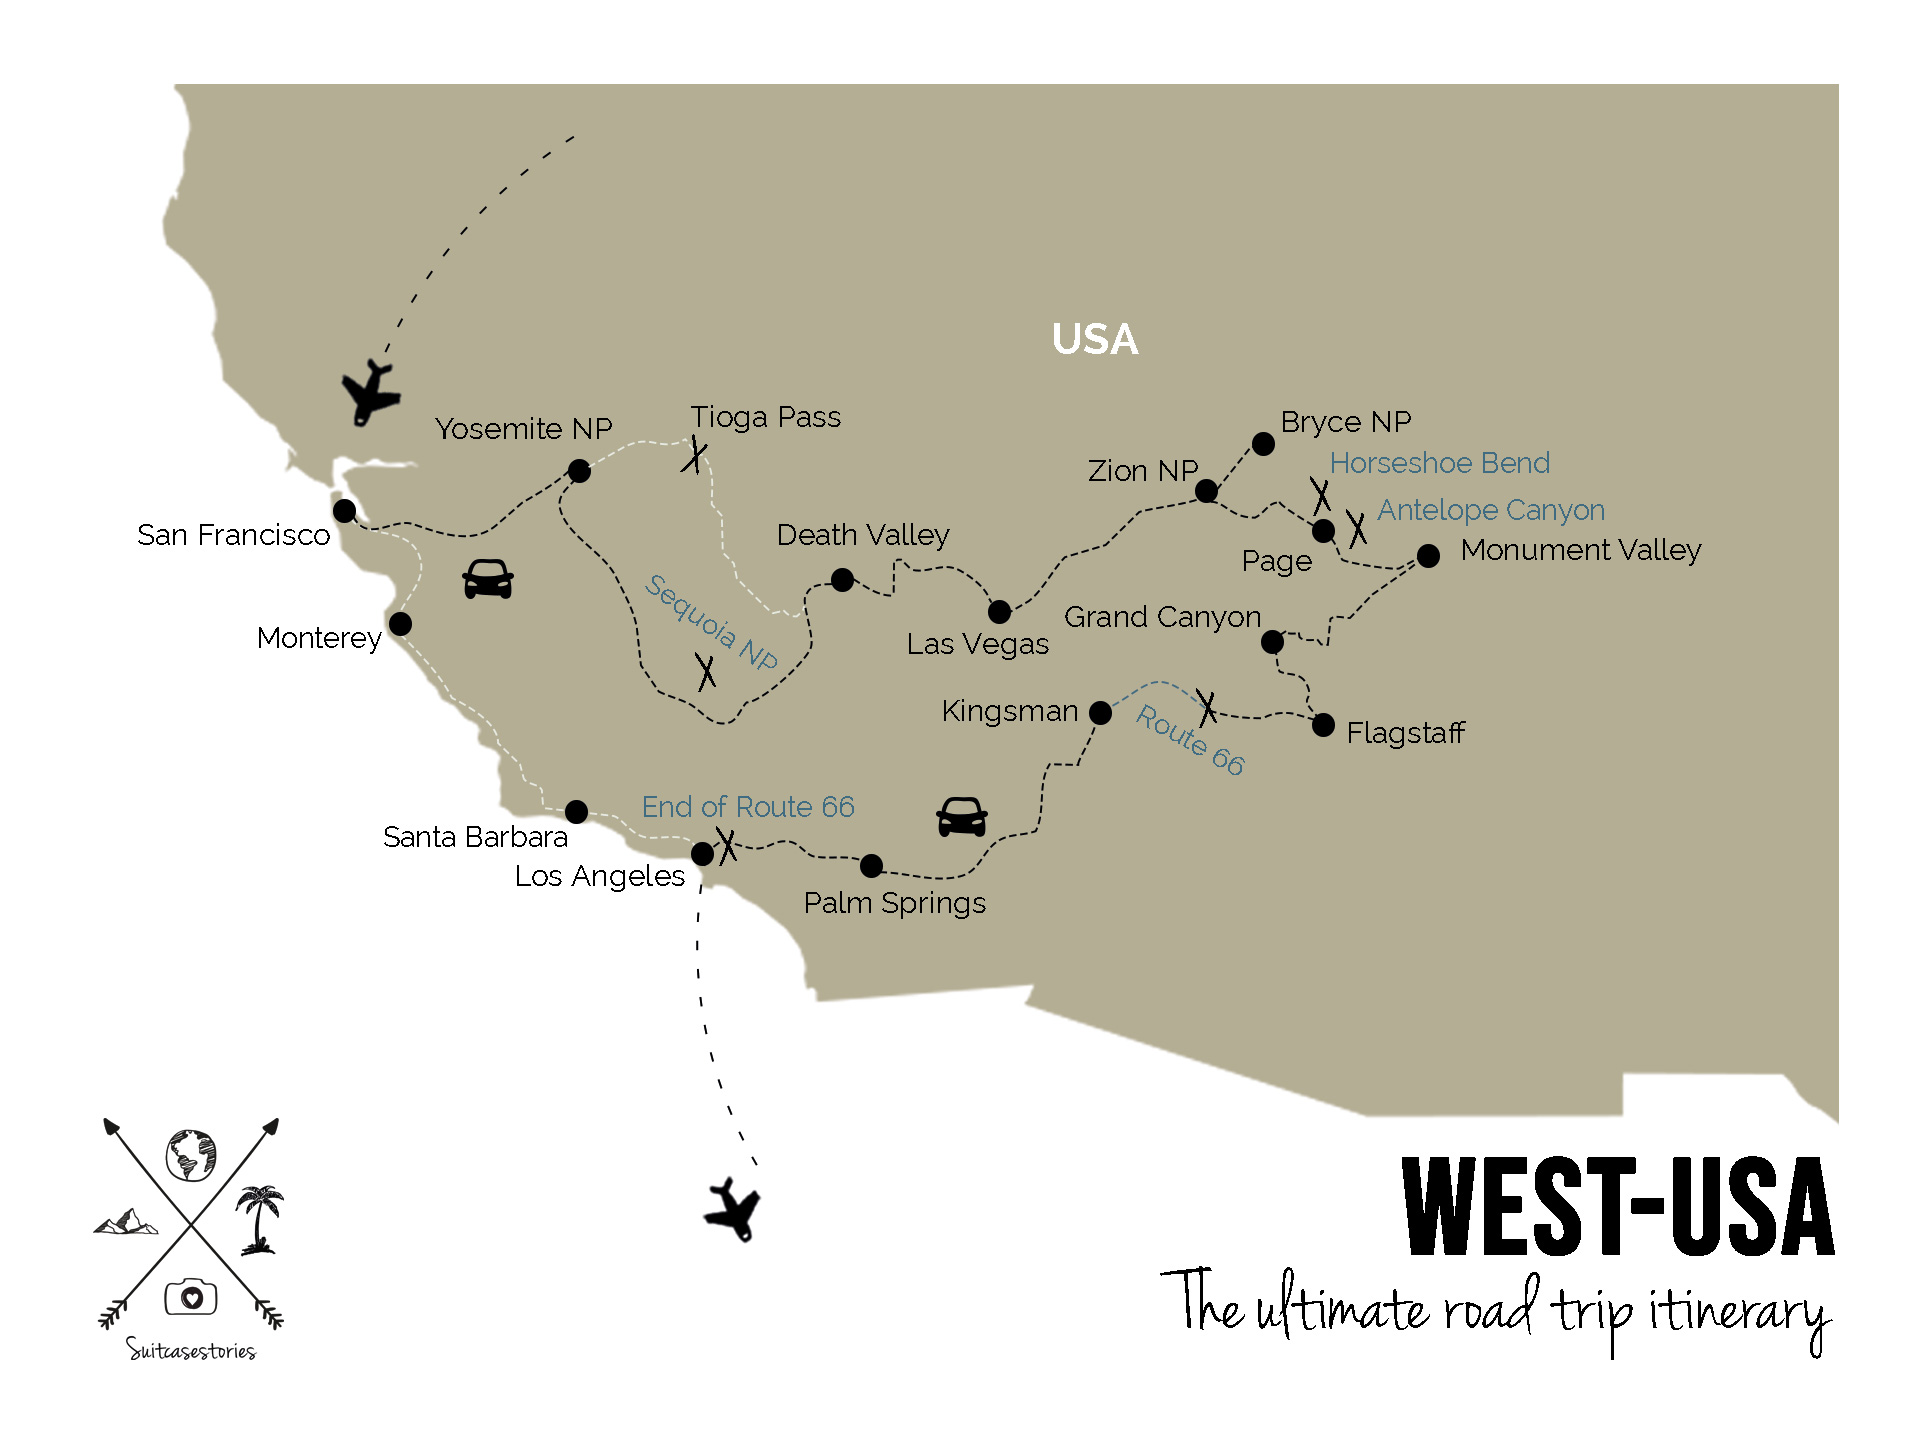 West USA: the ultimate road trip itinerary route map